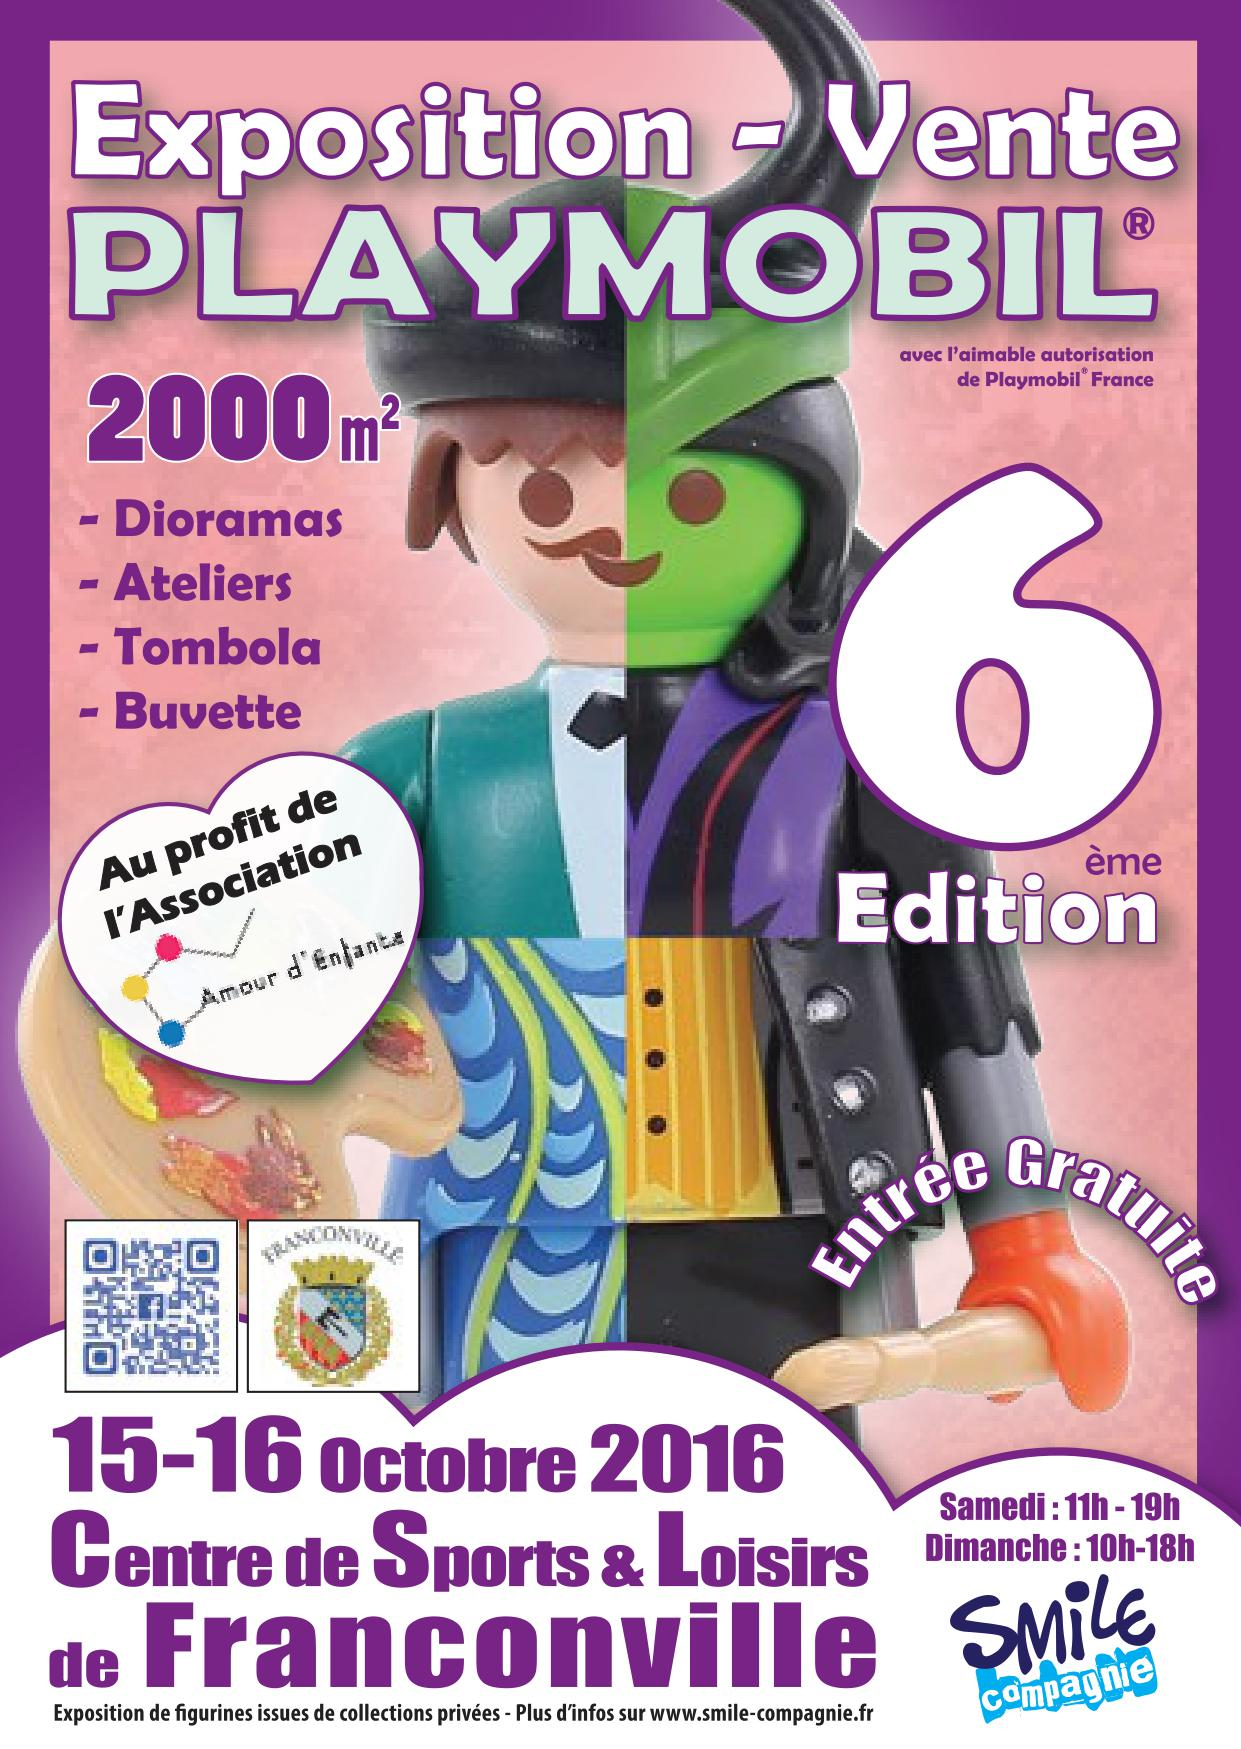 Flyer exposition Playmobil de Franconville 2016 - Recto